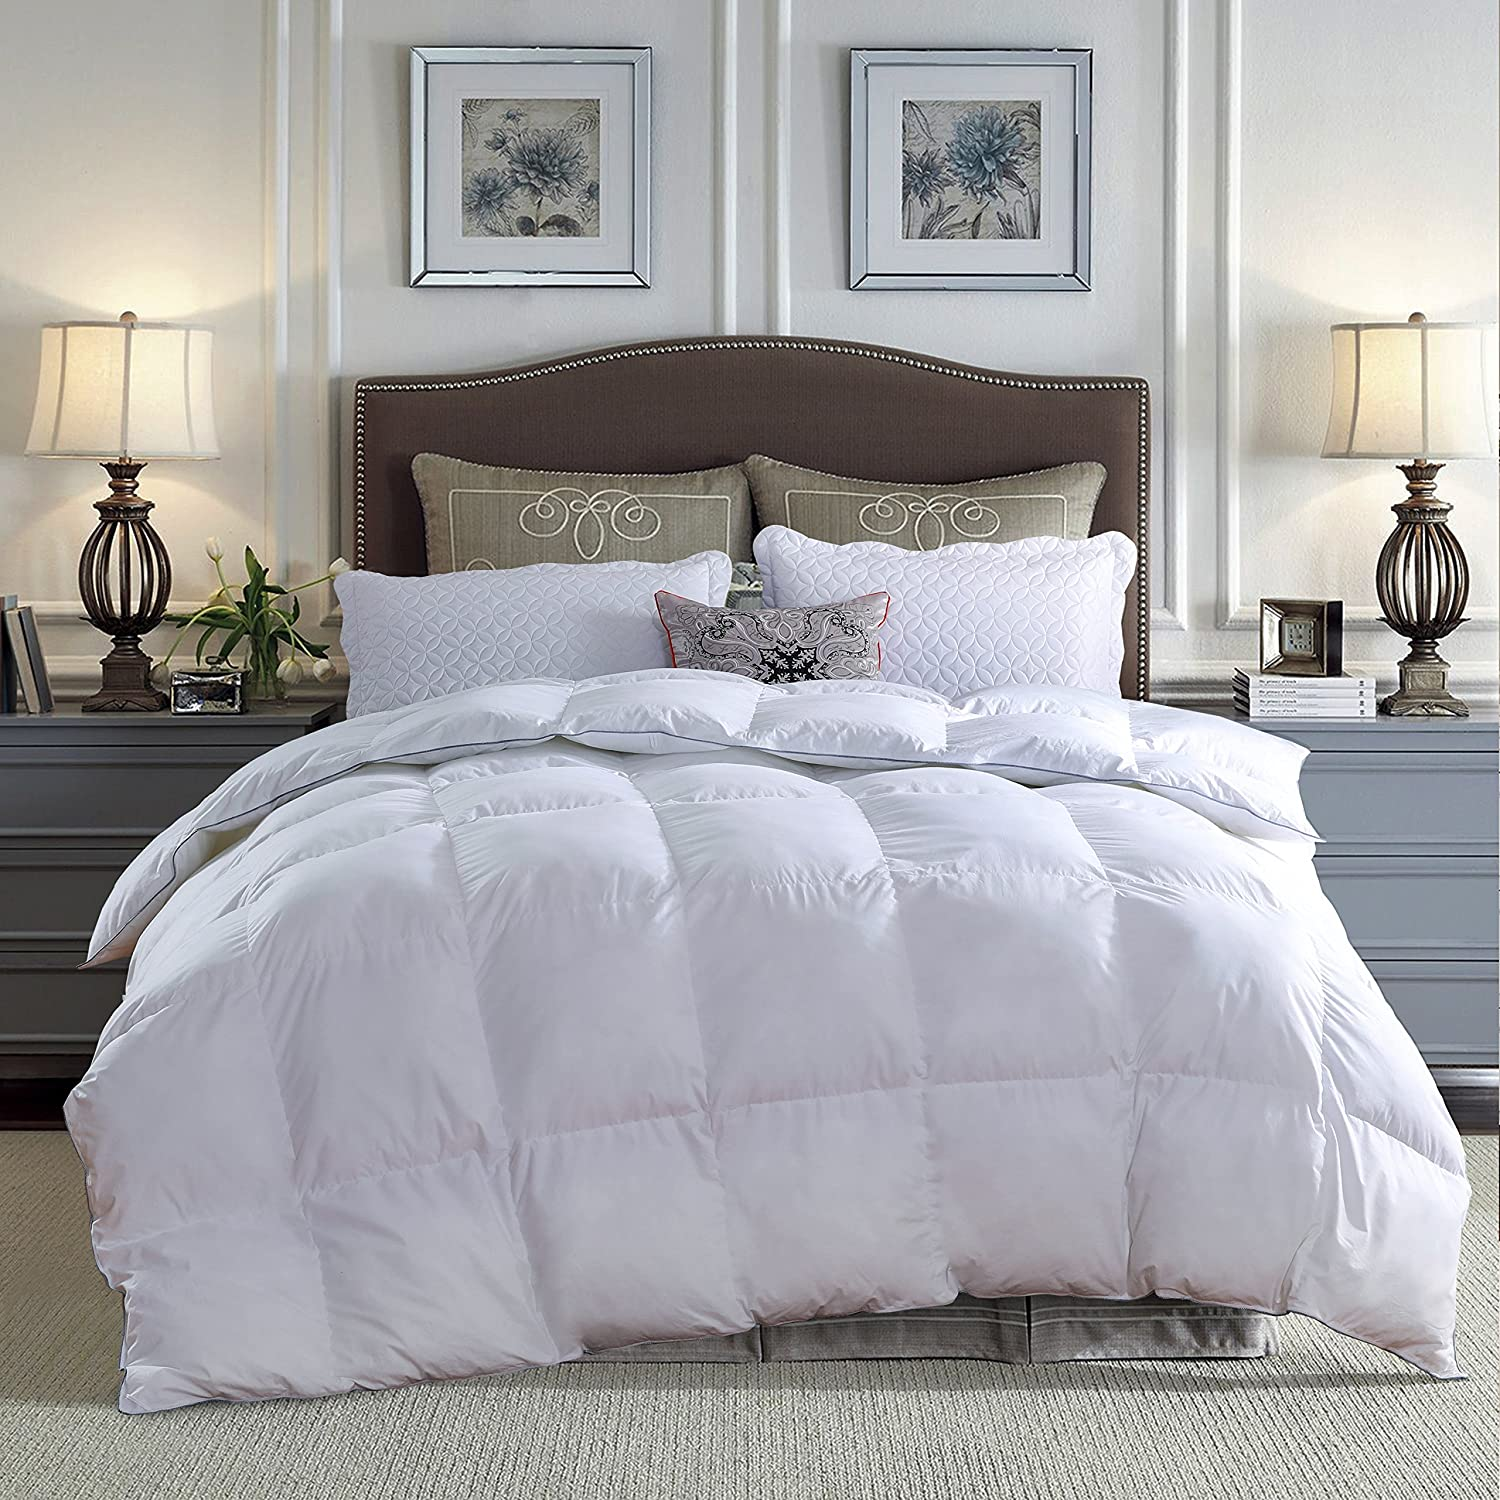 LOVSOUL Down Comforter King All Season Duvet Insert,Hypoallergenic Goose Down Comforter,1200 Thread Count 700+ Fill Power 100% Egyptian Cotton